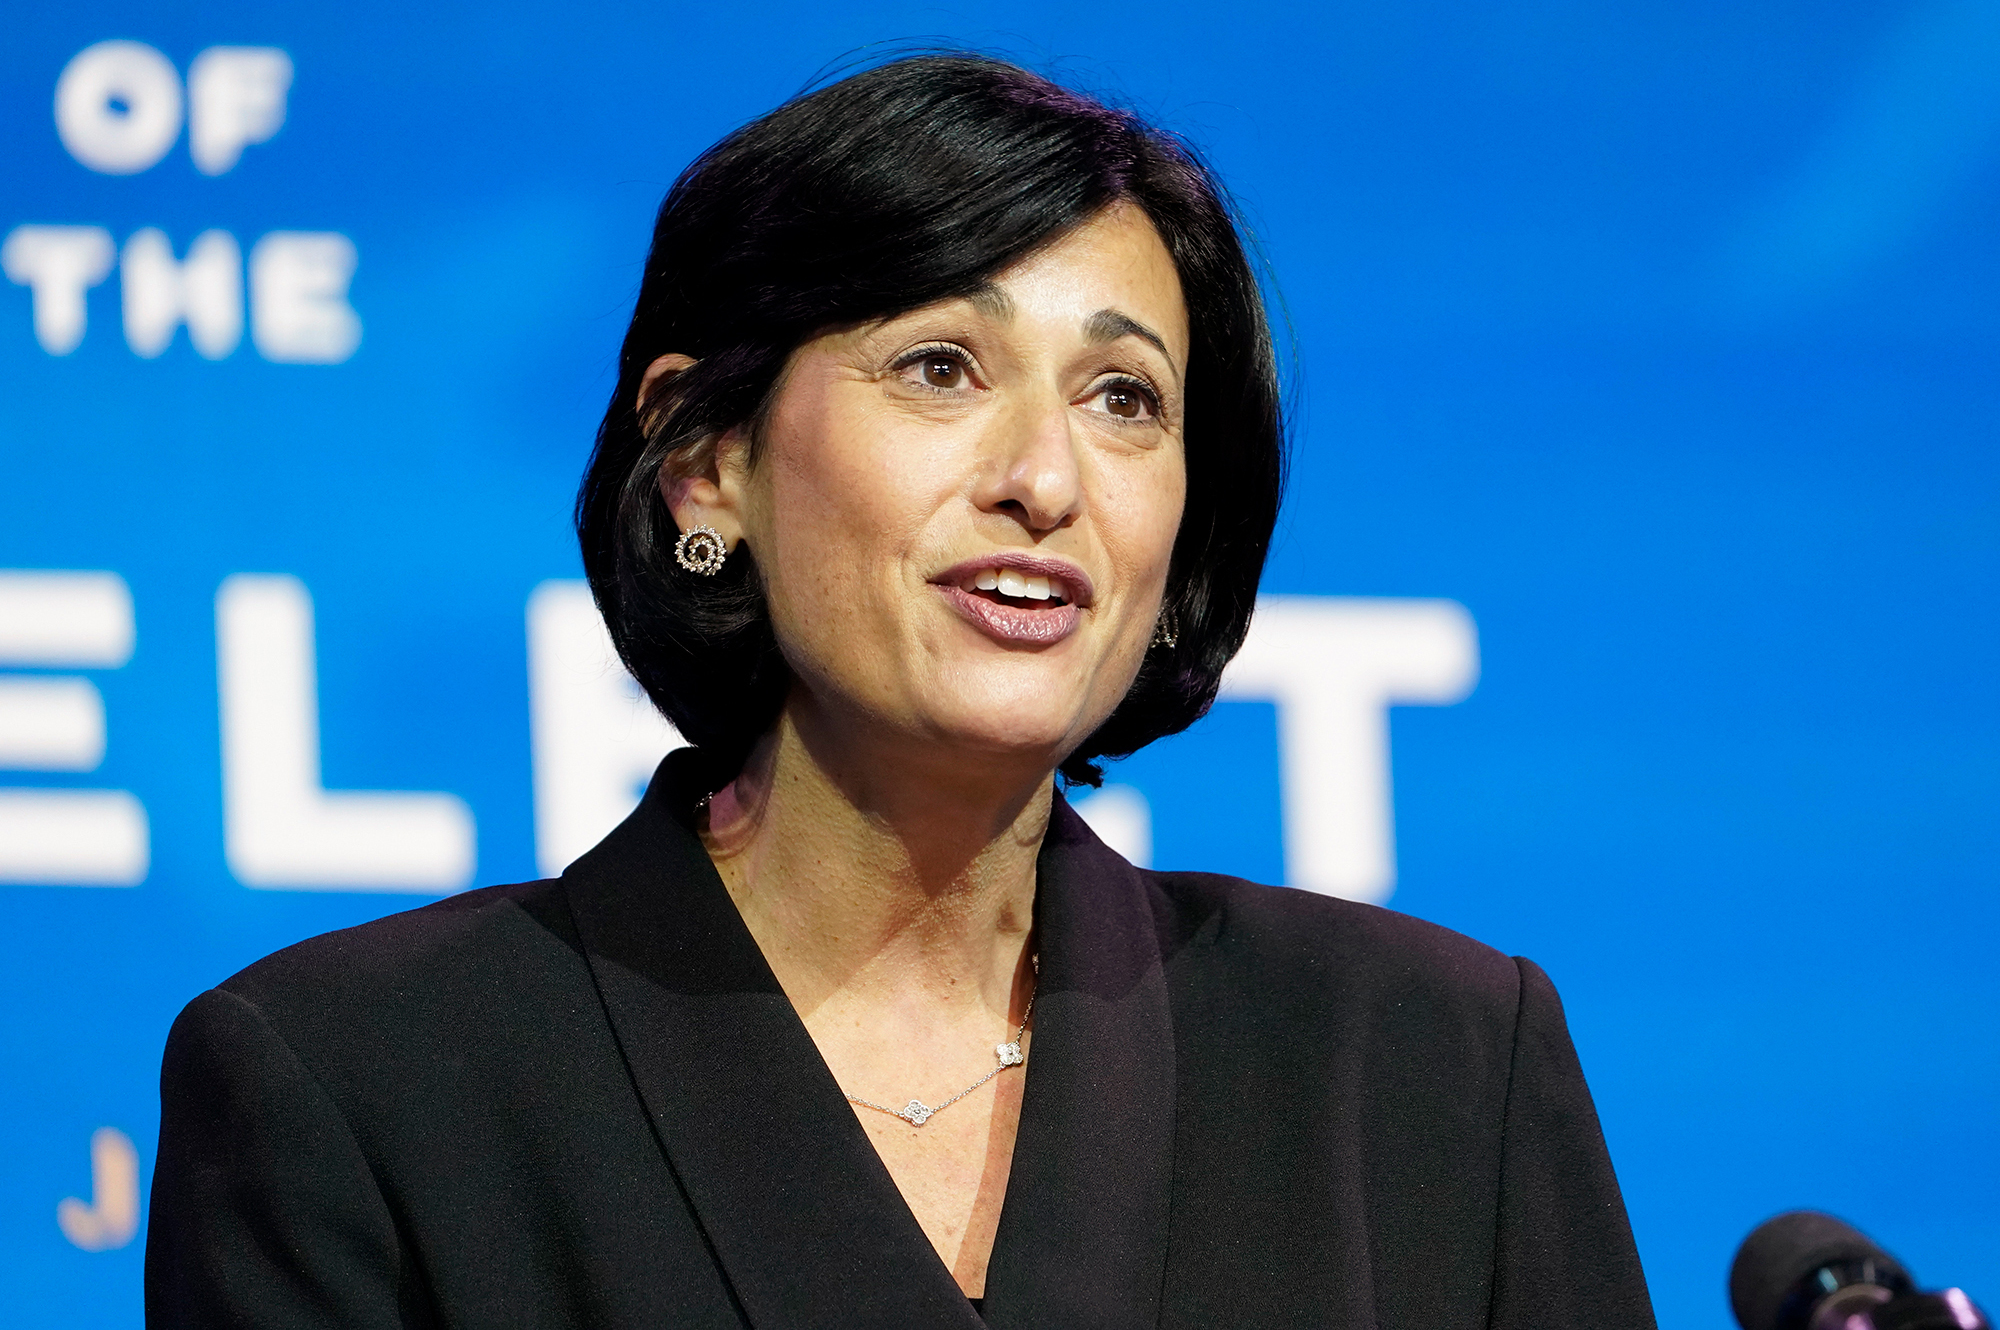 Dr. Rochelle Walensky took over as director of the CDC on Jan. 20, 2021.